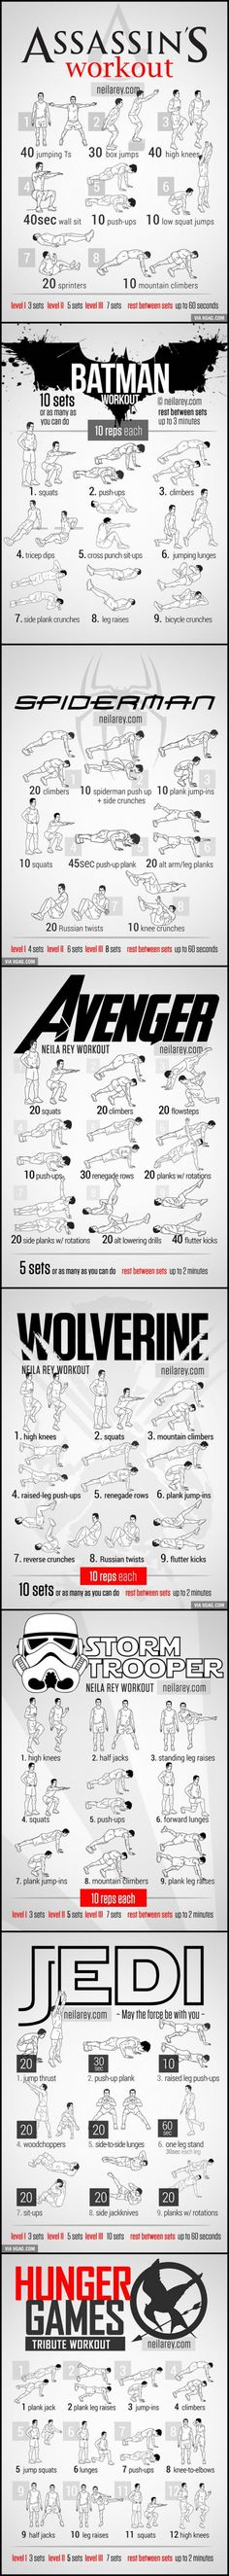 Workout for Assassin, Batman, Spiderman, Avenger, Wolverine, Stormtrooper, Jedi and Hunger Games!